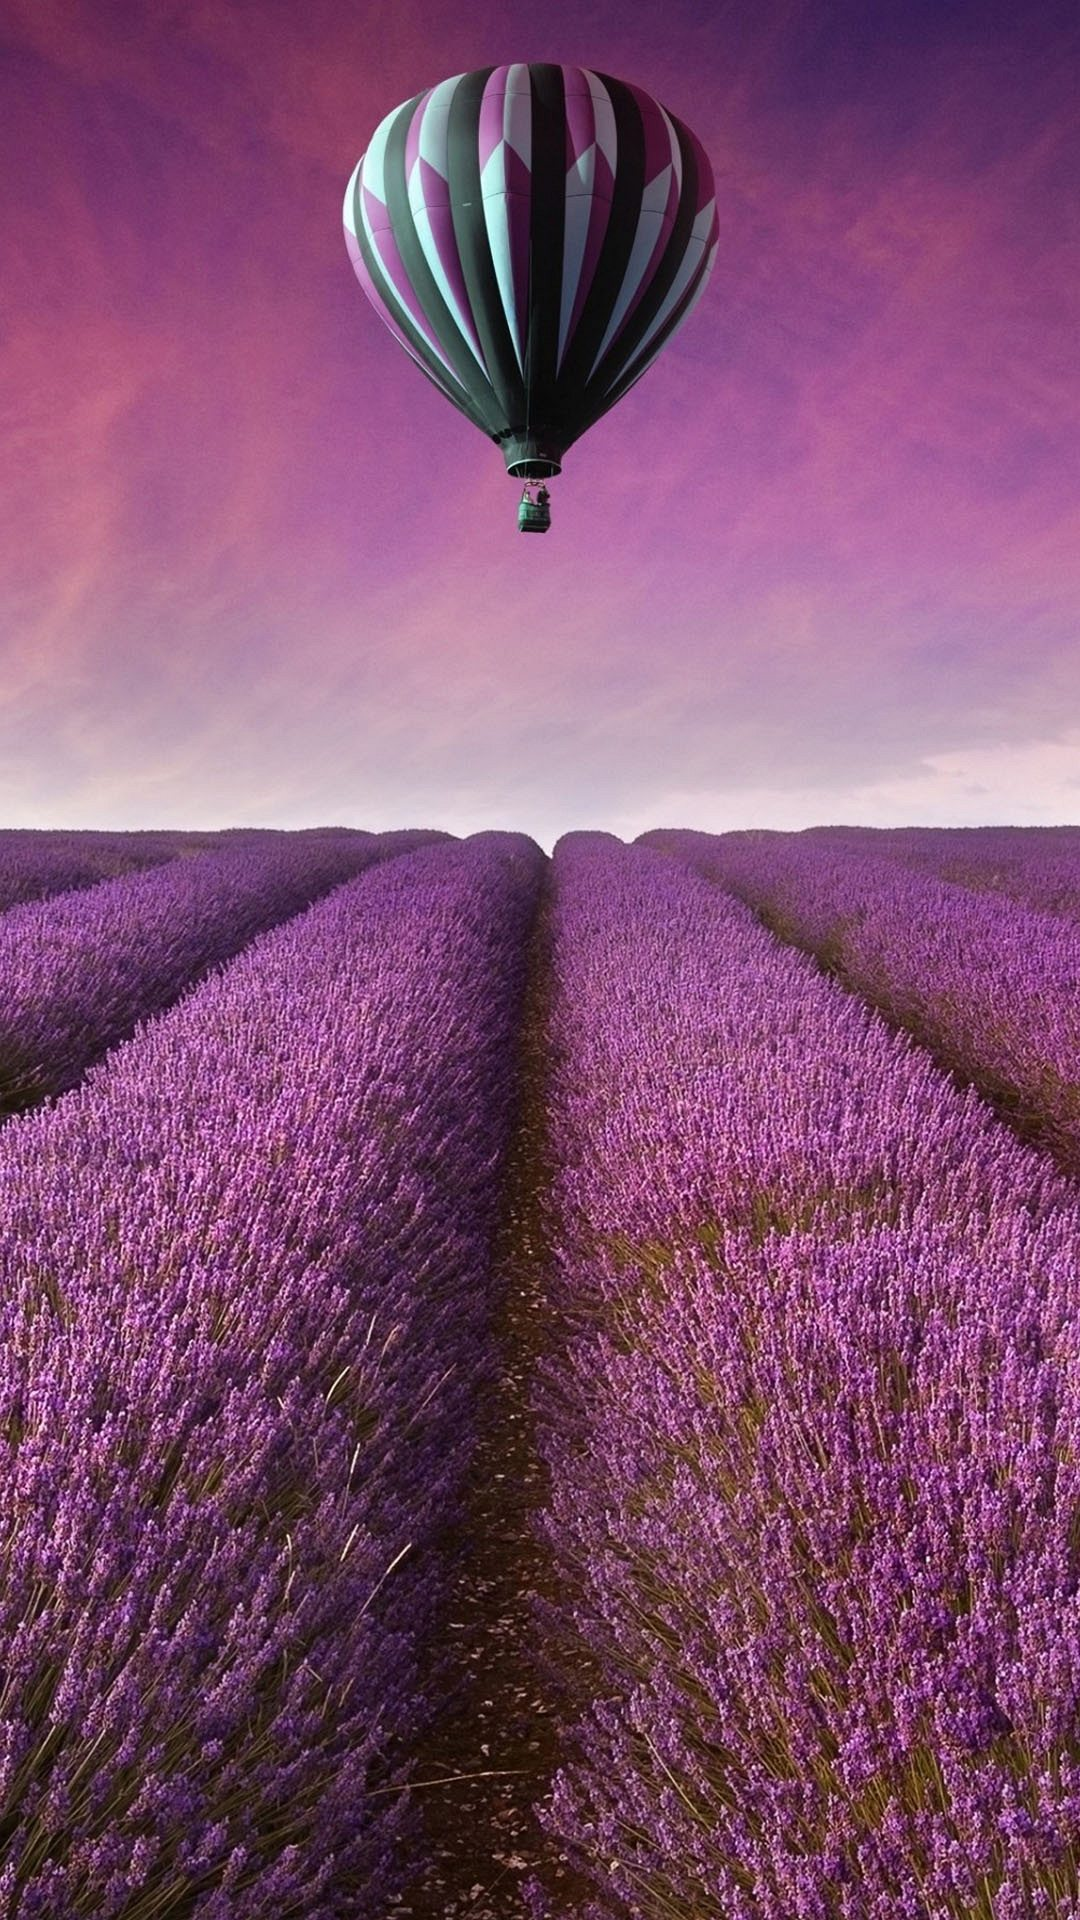 iPhone wallpaper balloon2 Balloon